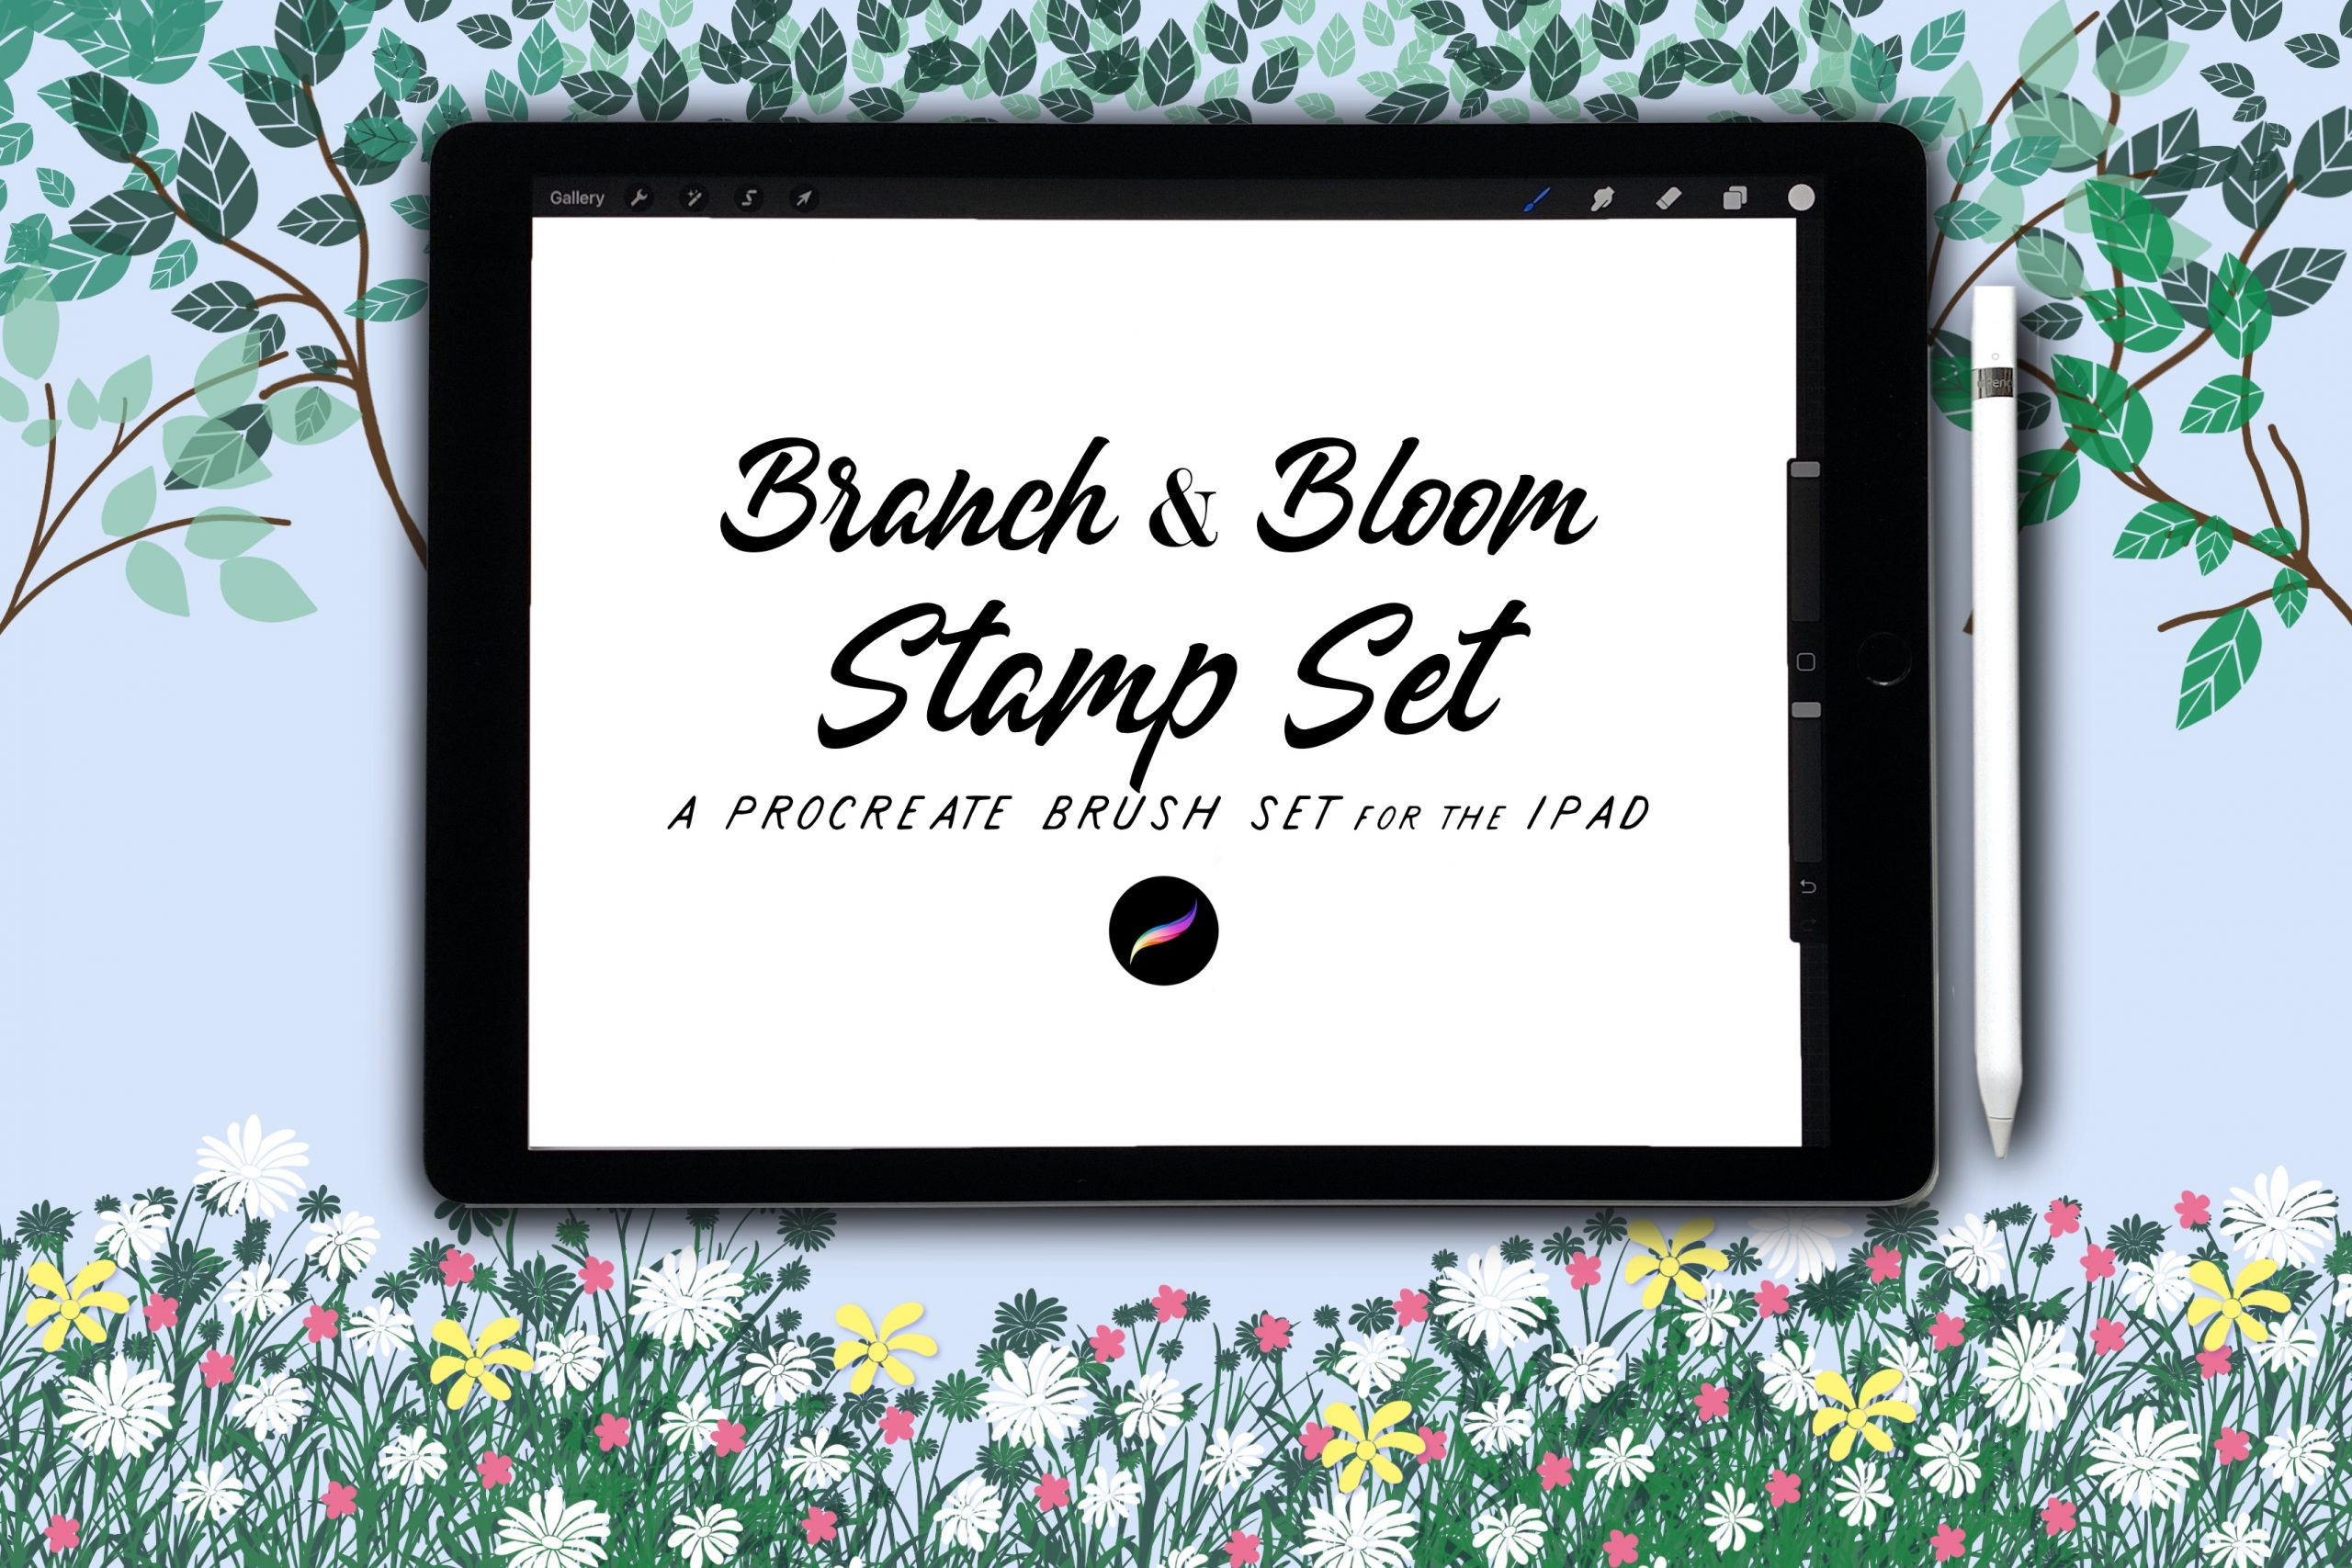 Branches & Blooms No. 1